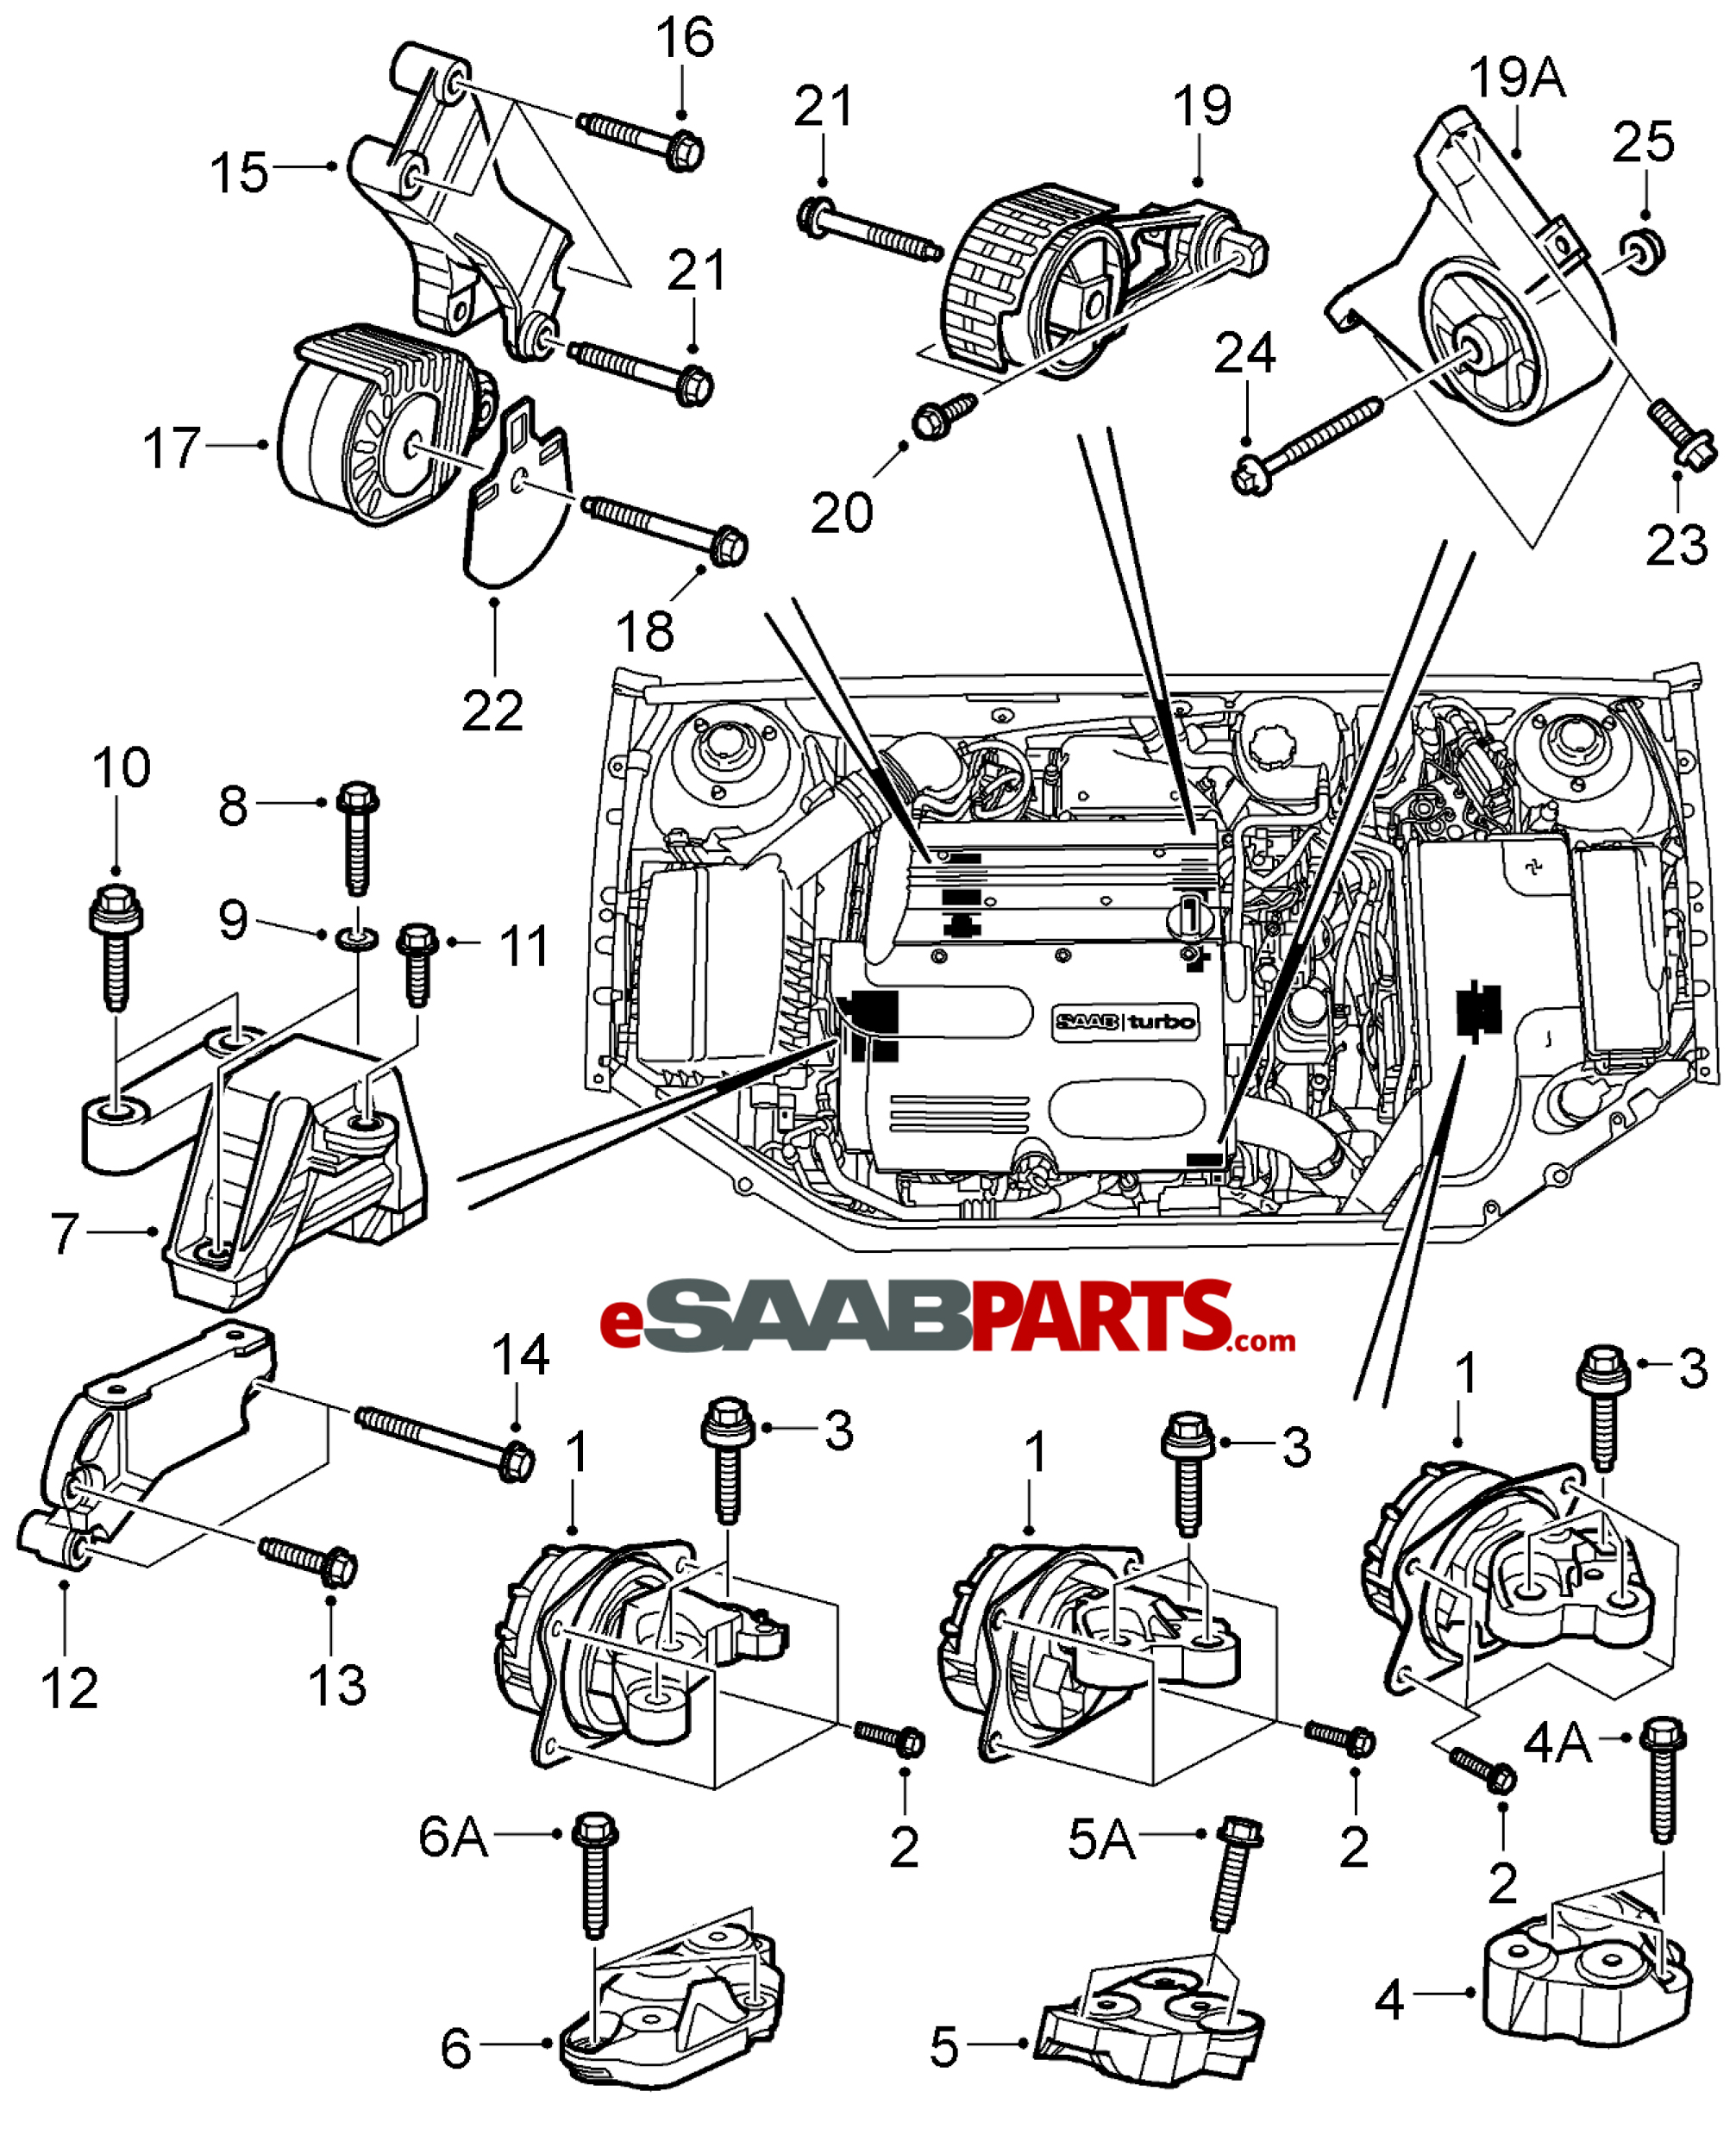 Diagram Saab 9 3 Viggen Wiring Diagram Full Version Hd